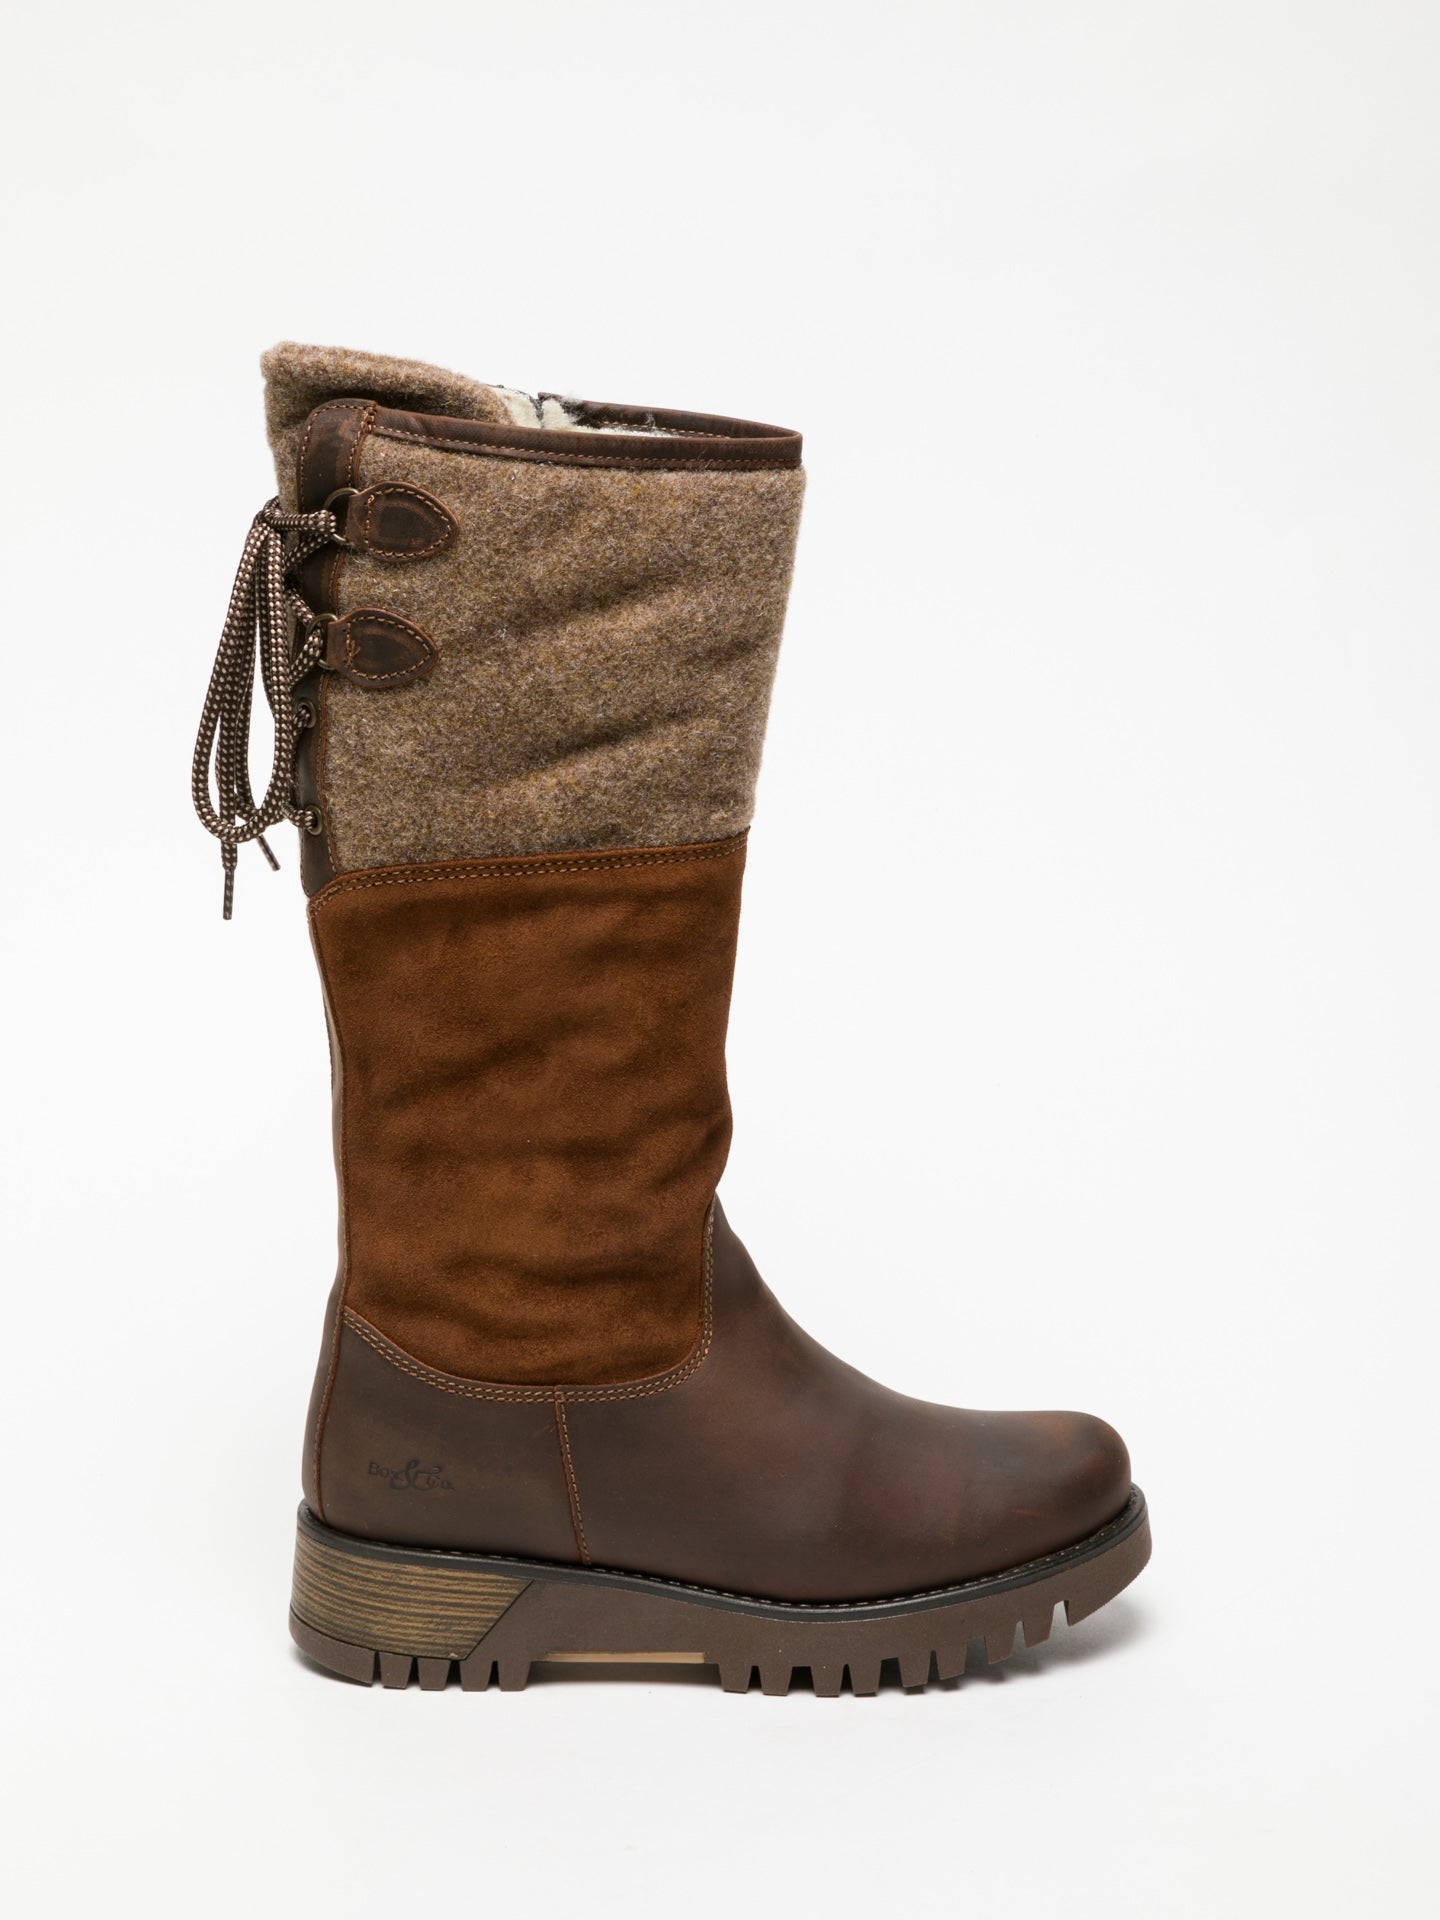 Bos&Co Brown Knee-High Boots